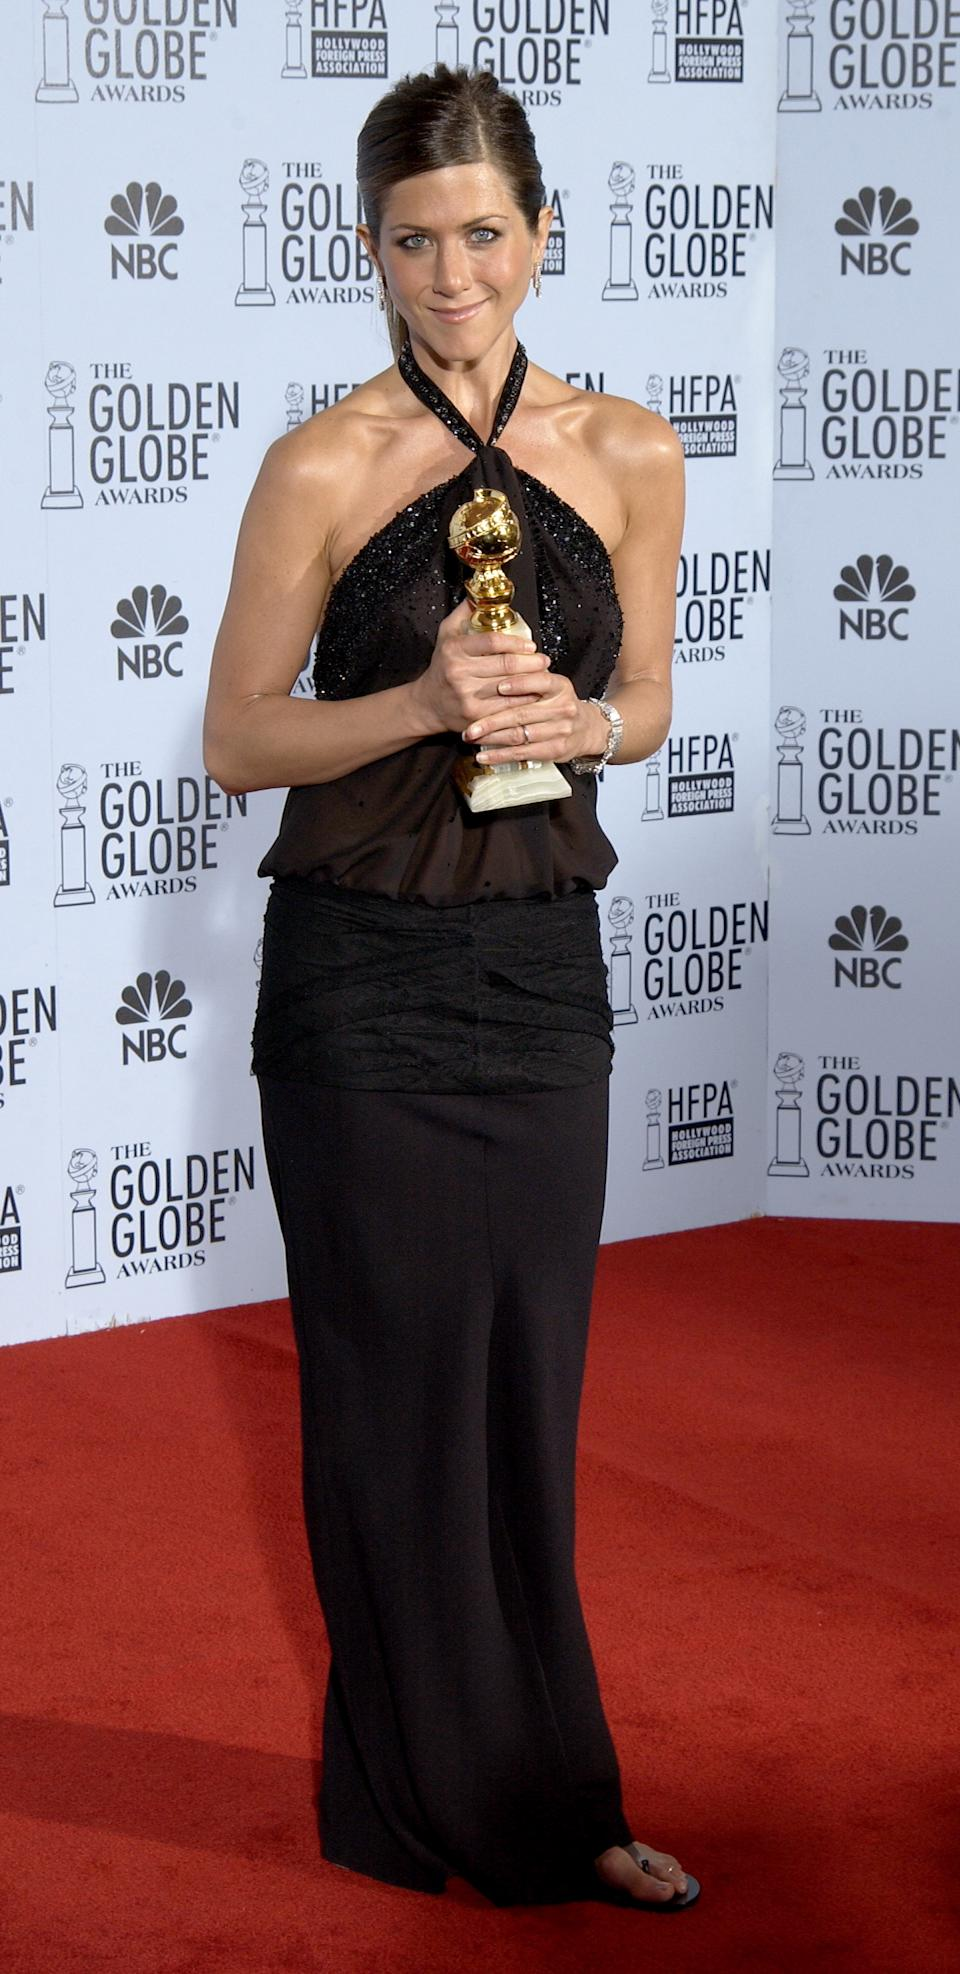 In 2003, Aniston picked up the Golden Globe Award for Best Actress in a Musical or Comedy - and surprised fans by pulling her with her newly darkened locks in a sleek ponytail. (Image via Getty Images)